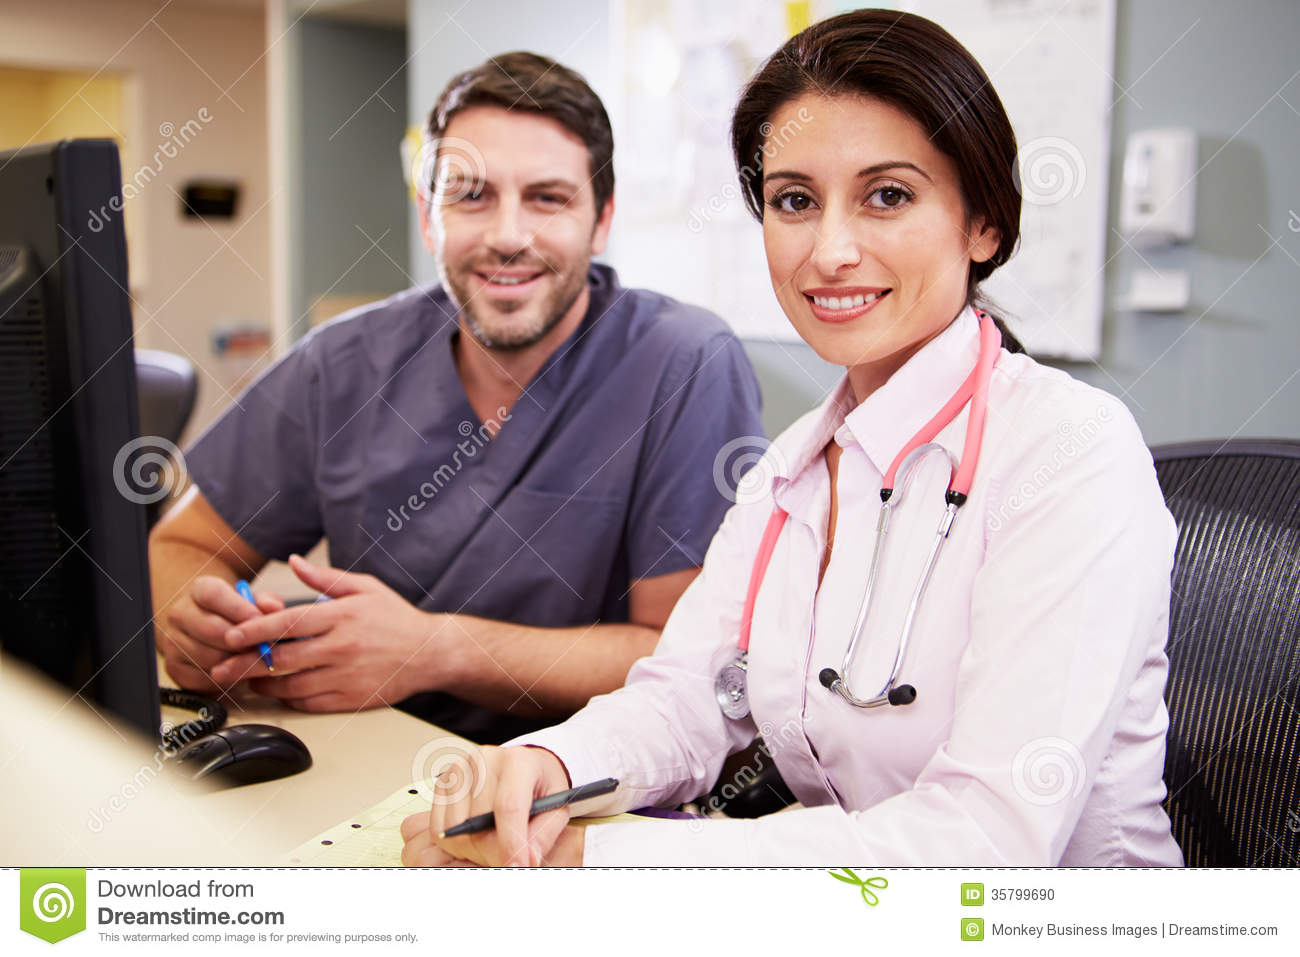 male nurse dating doctor I know plenty of male lawyers who date how come so few female doctors marry male nurses i have never met a doctor who is married to a nurse.